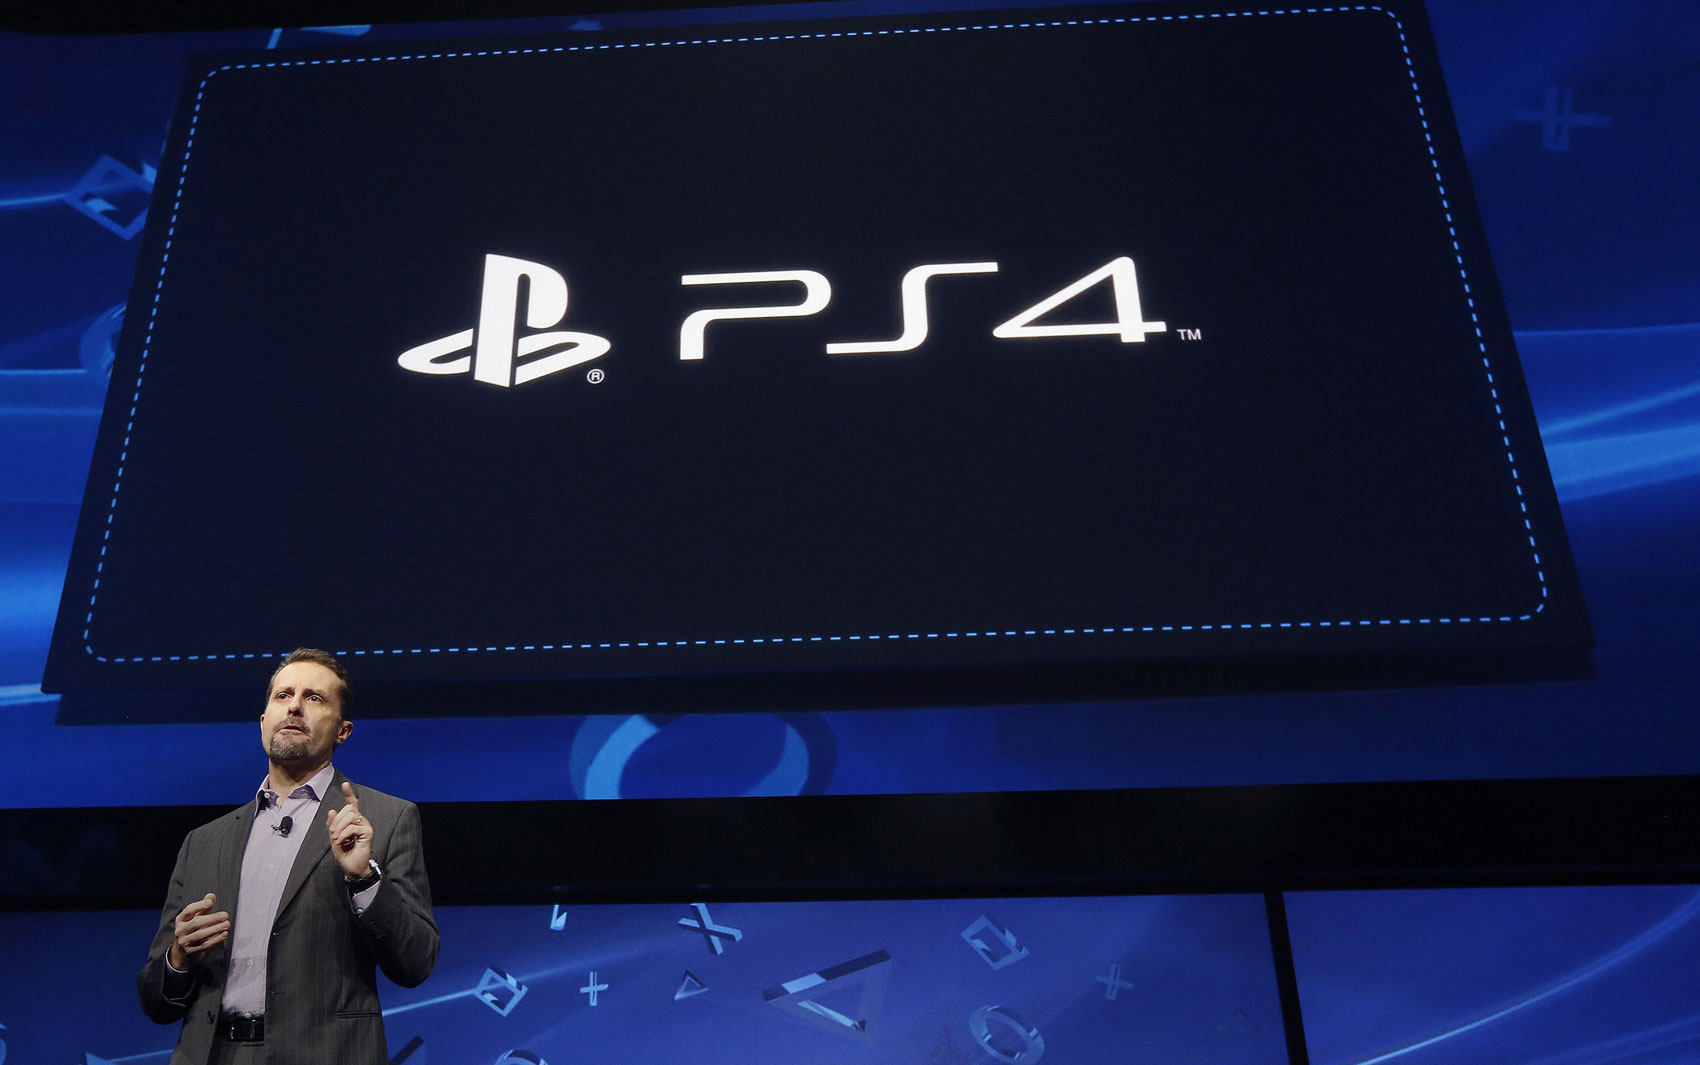 Andrew House, presidente e diretor-executivo da Sony Computer Entertainment Inc., anuncia o PlayStation 4